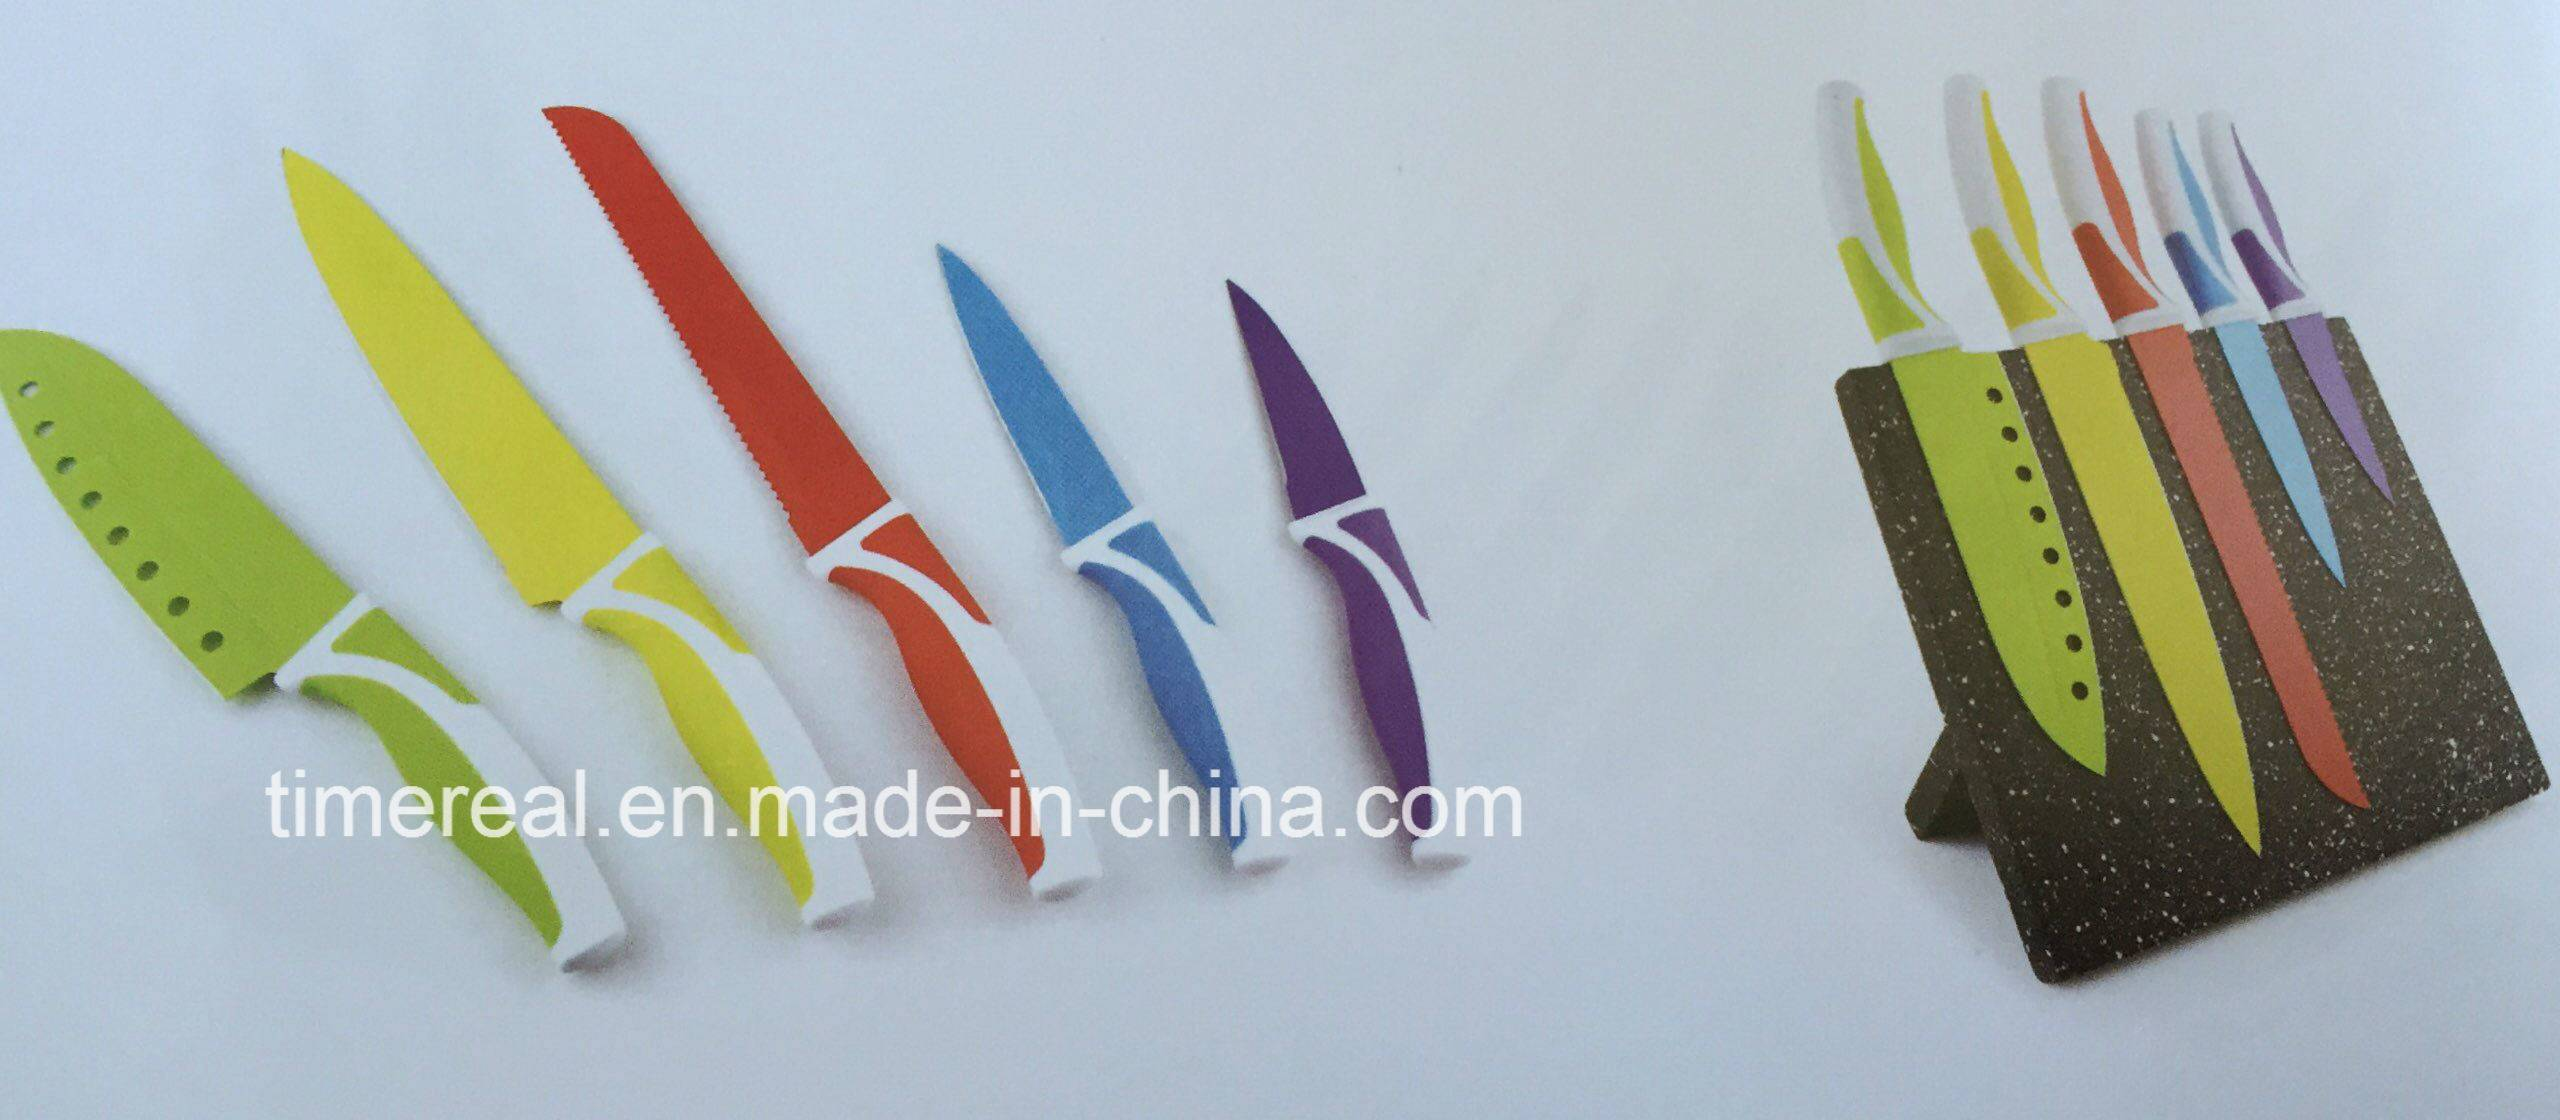 Stainless Steel Kitchen Knives Set with Painting No. Fj-0038